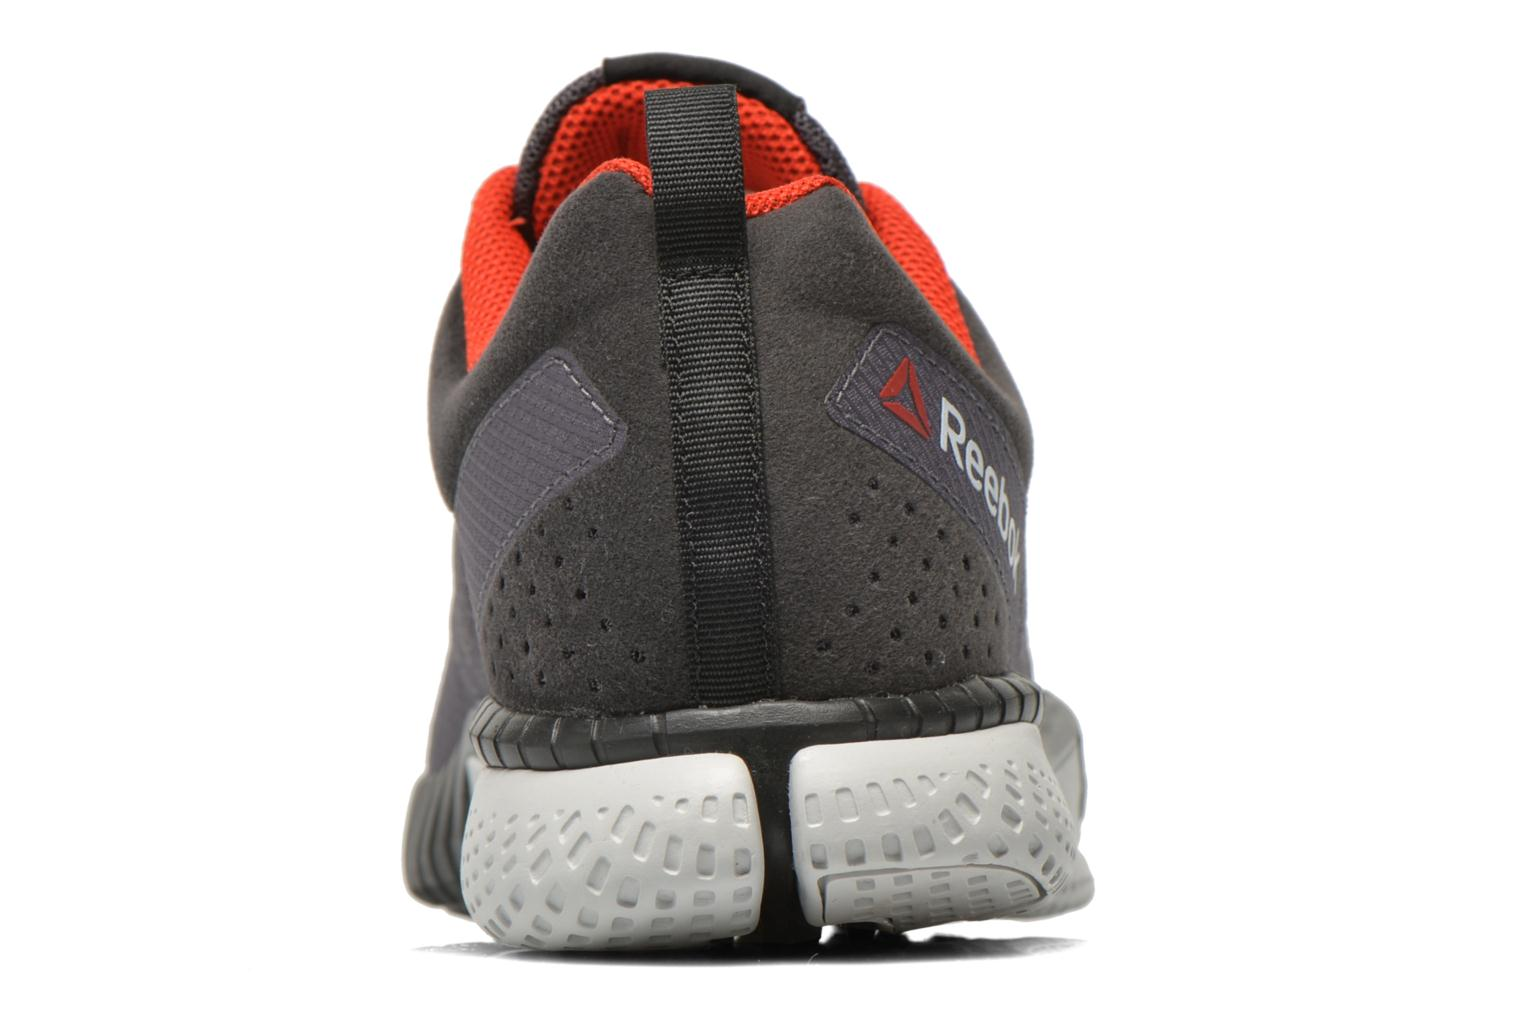 Reebok Zprint Train Ash Grey/Black/Skull Grey/Riot Red